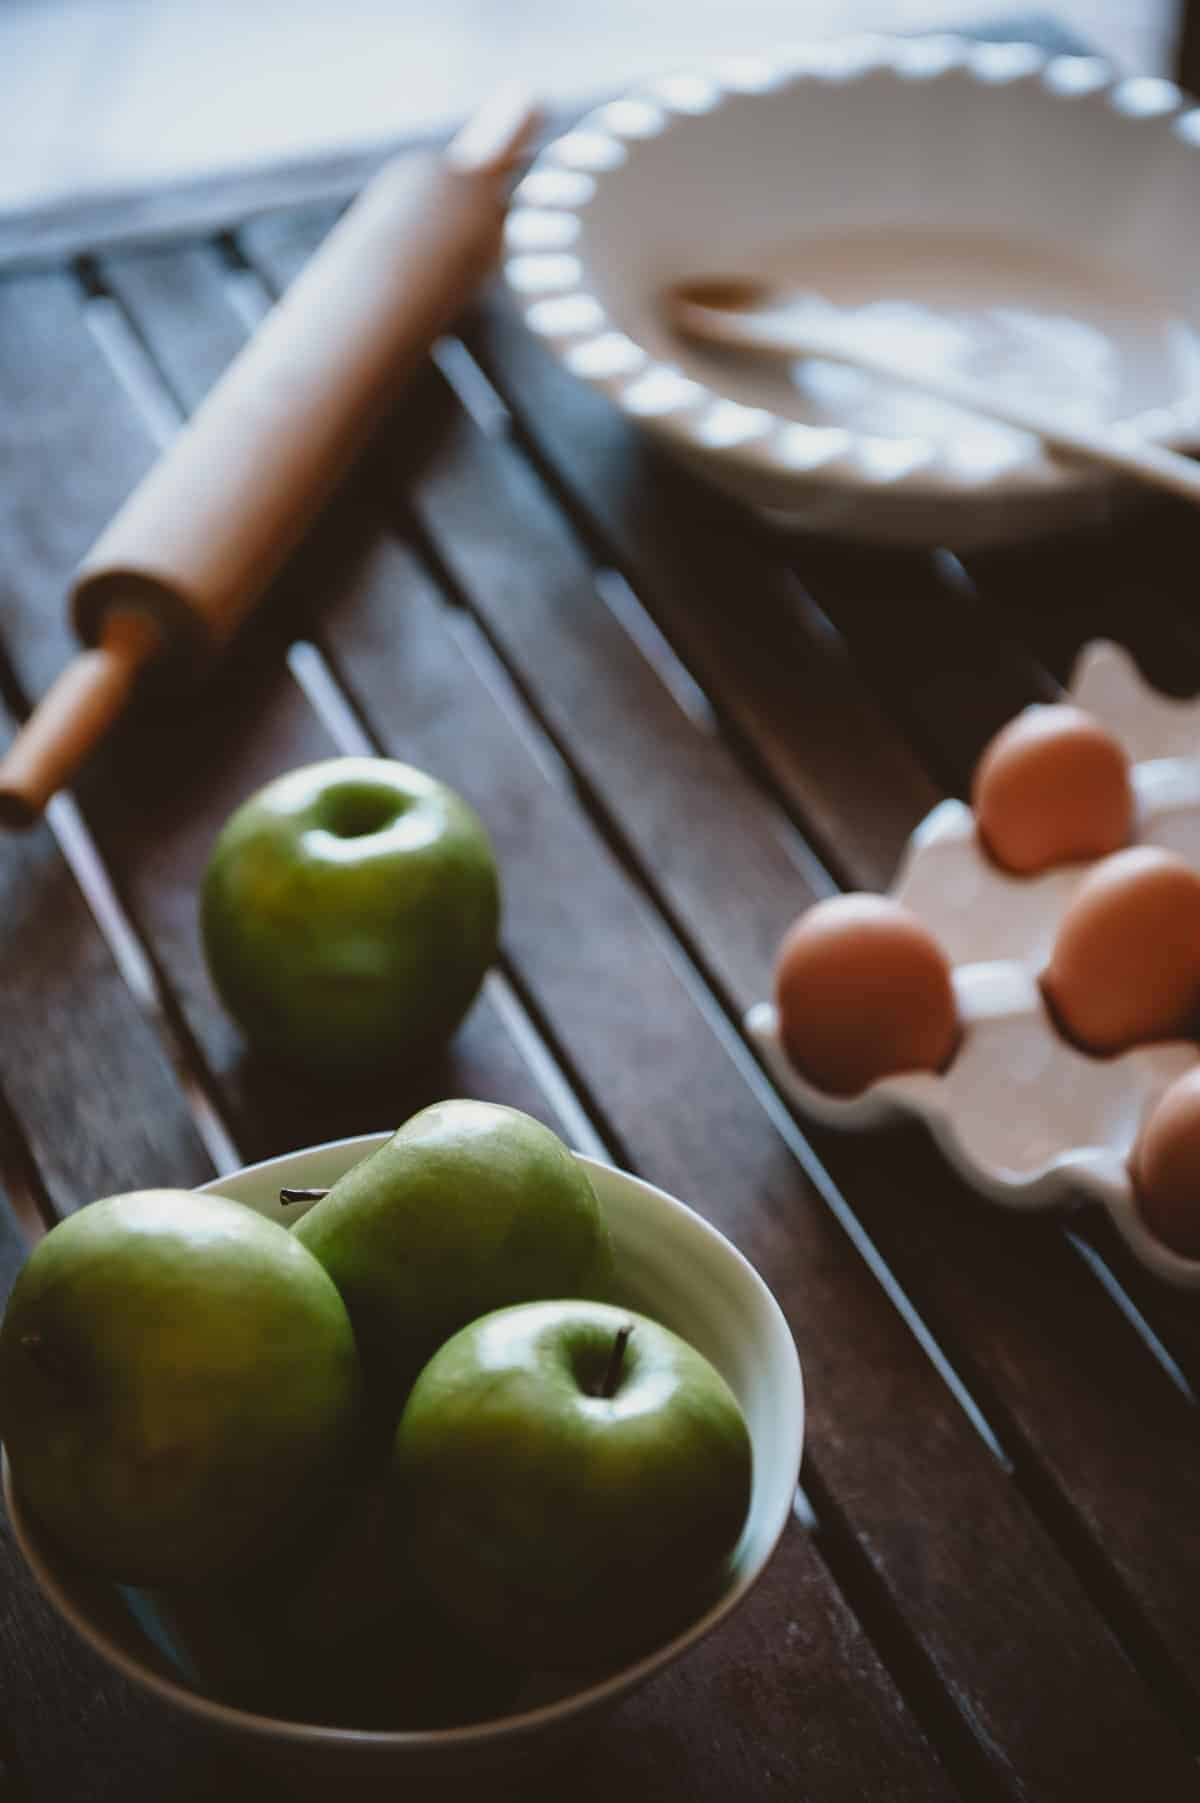 apples, eggs, a rolling pin and a dish too make apple pie on a wooden table